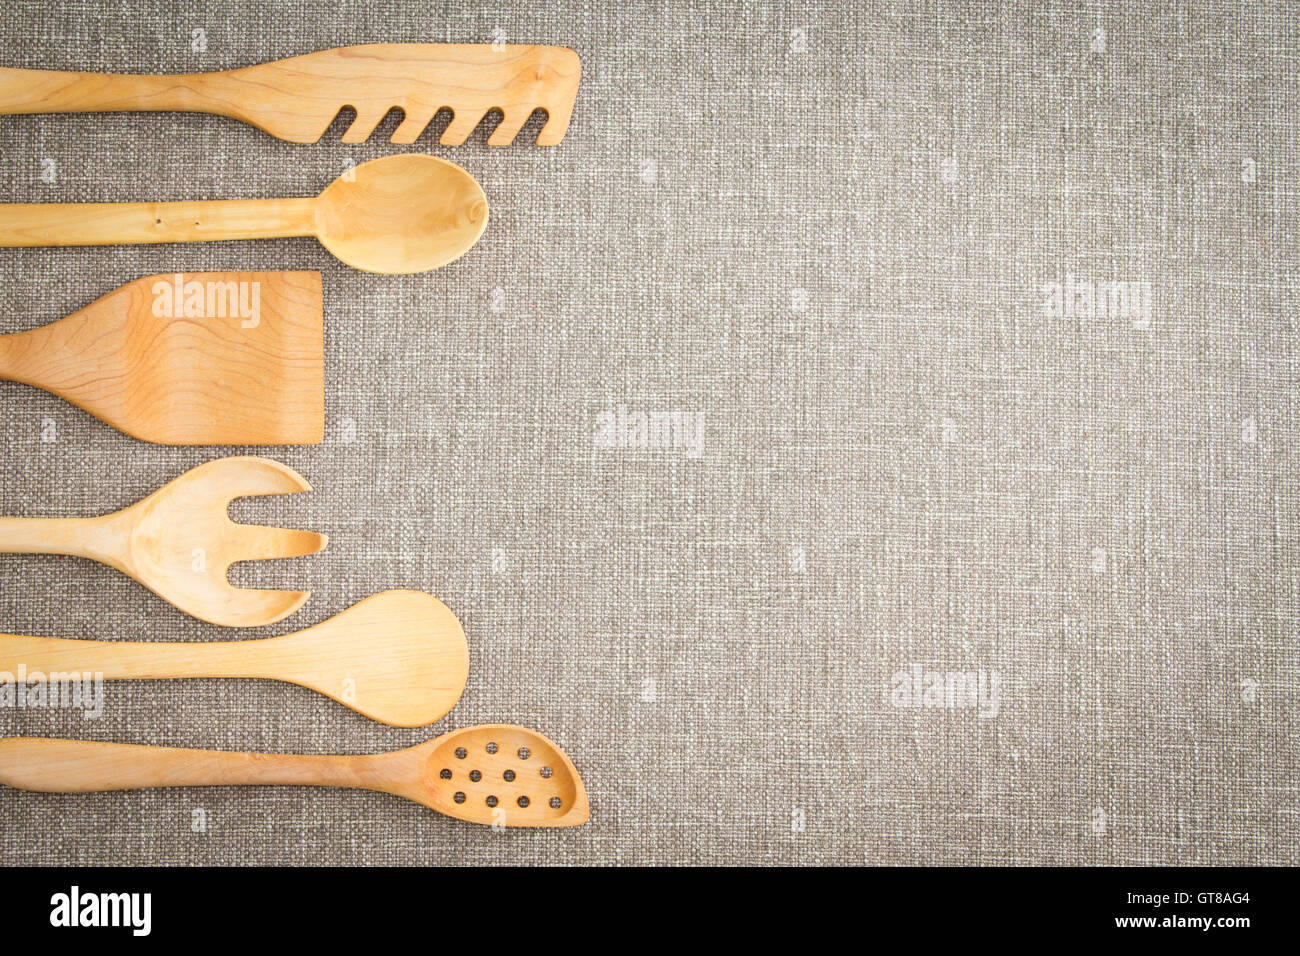 Kitchen Utensils Border Wooden Cooking Utensils For Food Preparation Arranged In A Curving